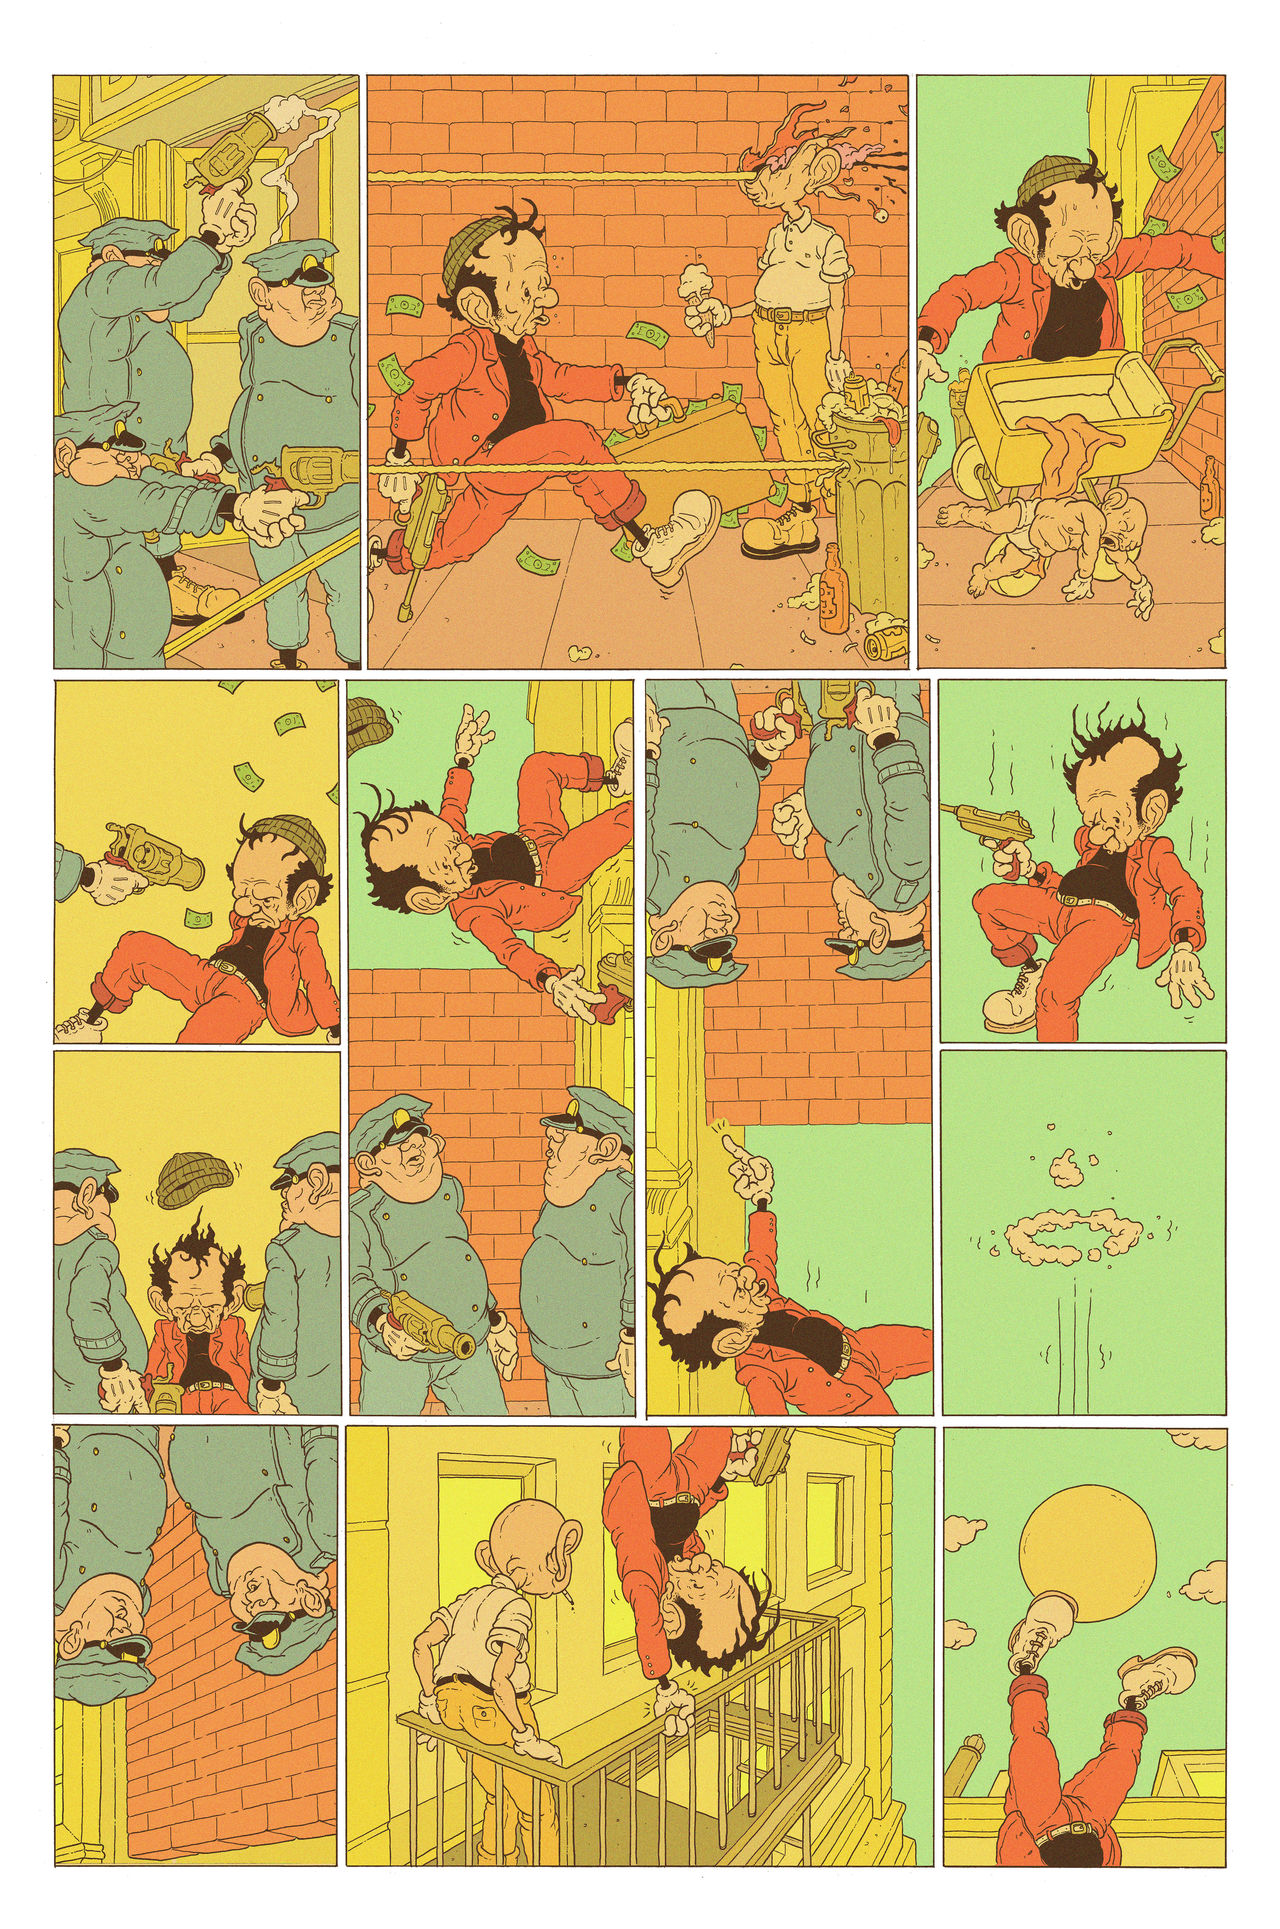 A multi-panelled comic depicting a robber in a red suit and yellow beanie running away from police. he's carrying a pistol and a suitcase full of cash. In a beautifully grotesque aesthetic style, he runs through the street as police shoot at him, hitting others. He's almost caught and suddenly he is lifted into the sky. His centre of gravity has reversed and he holds on to a railing at the top of a building to stop from floating away.